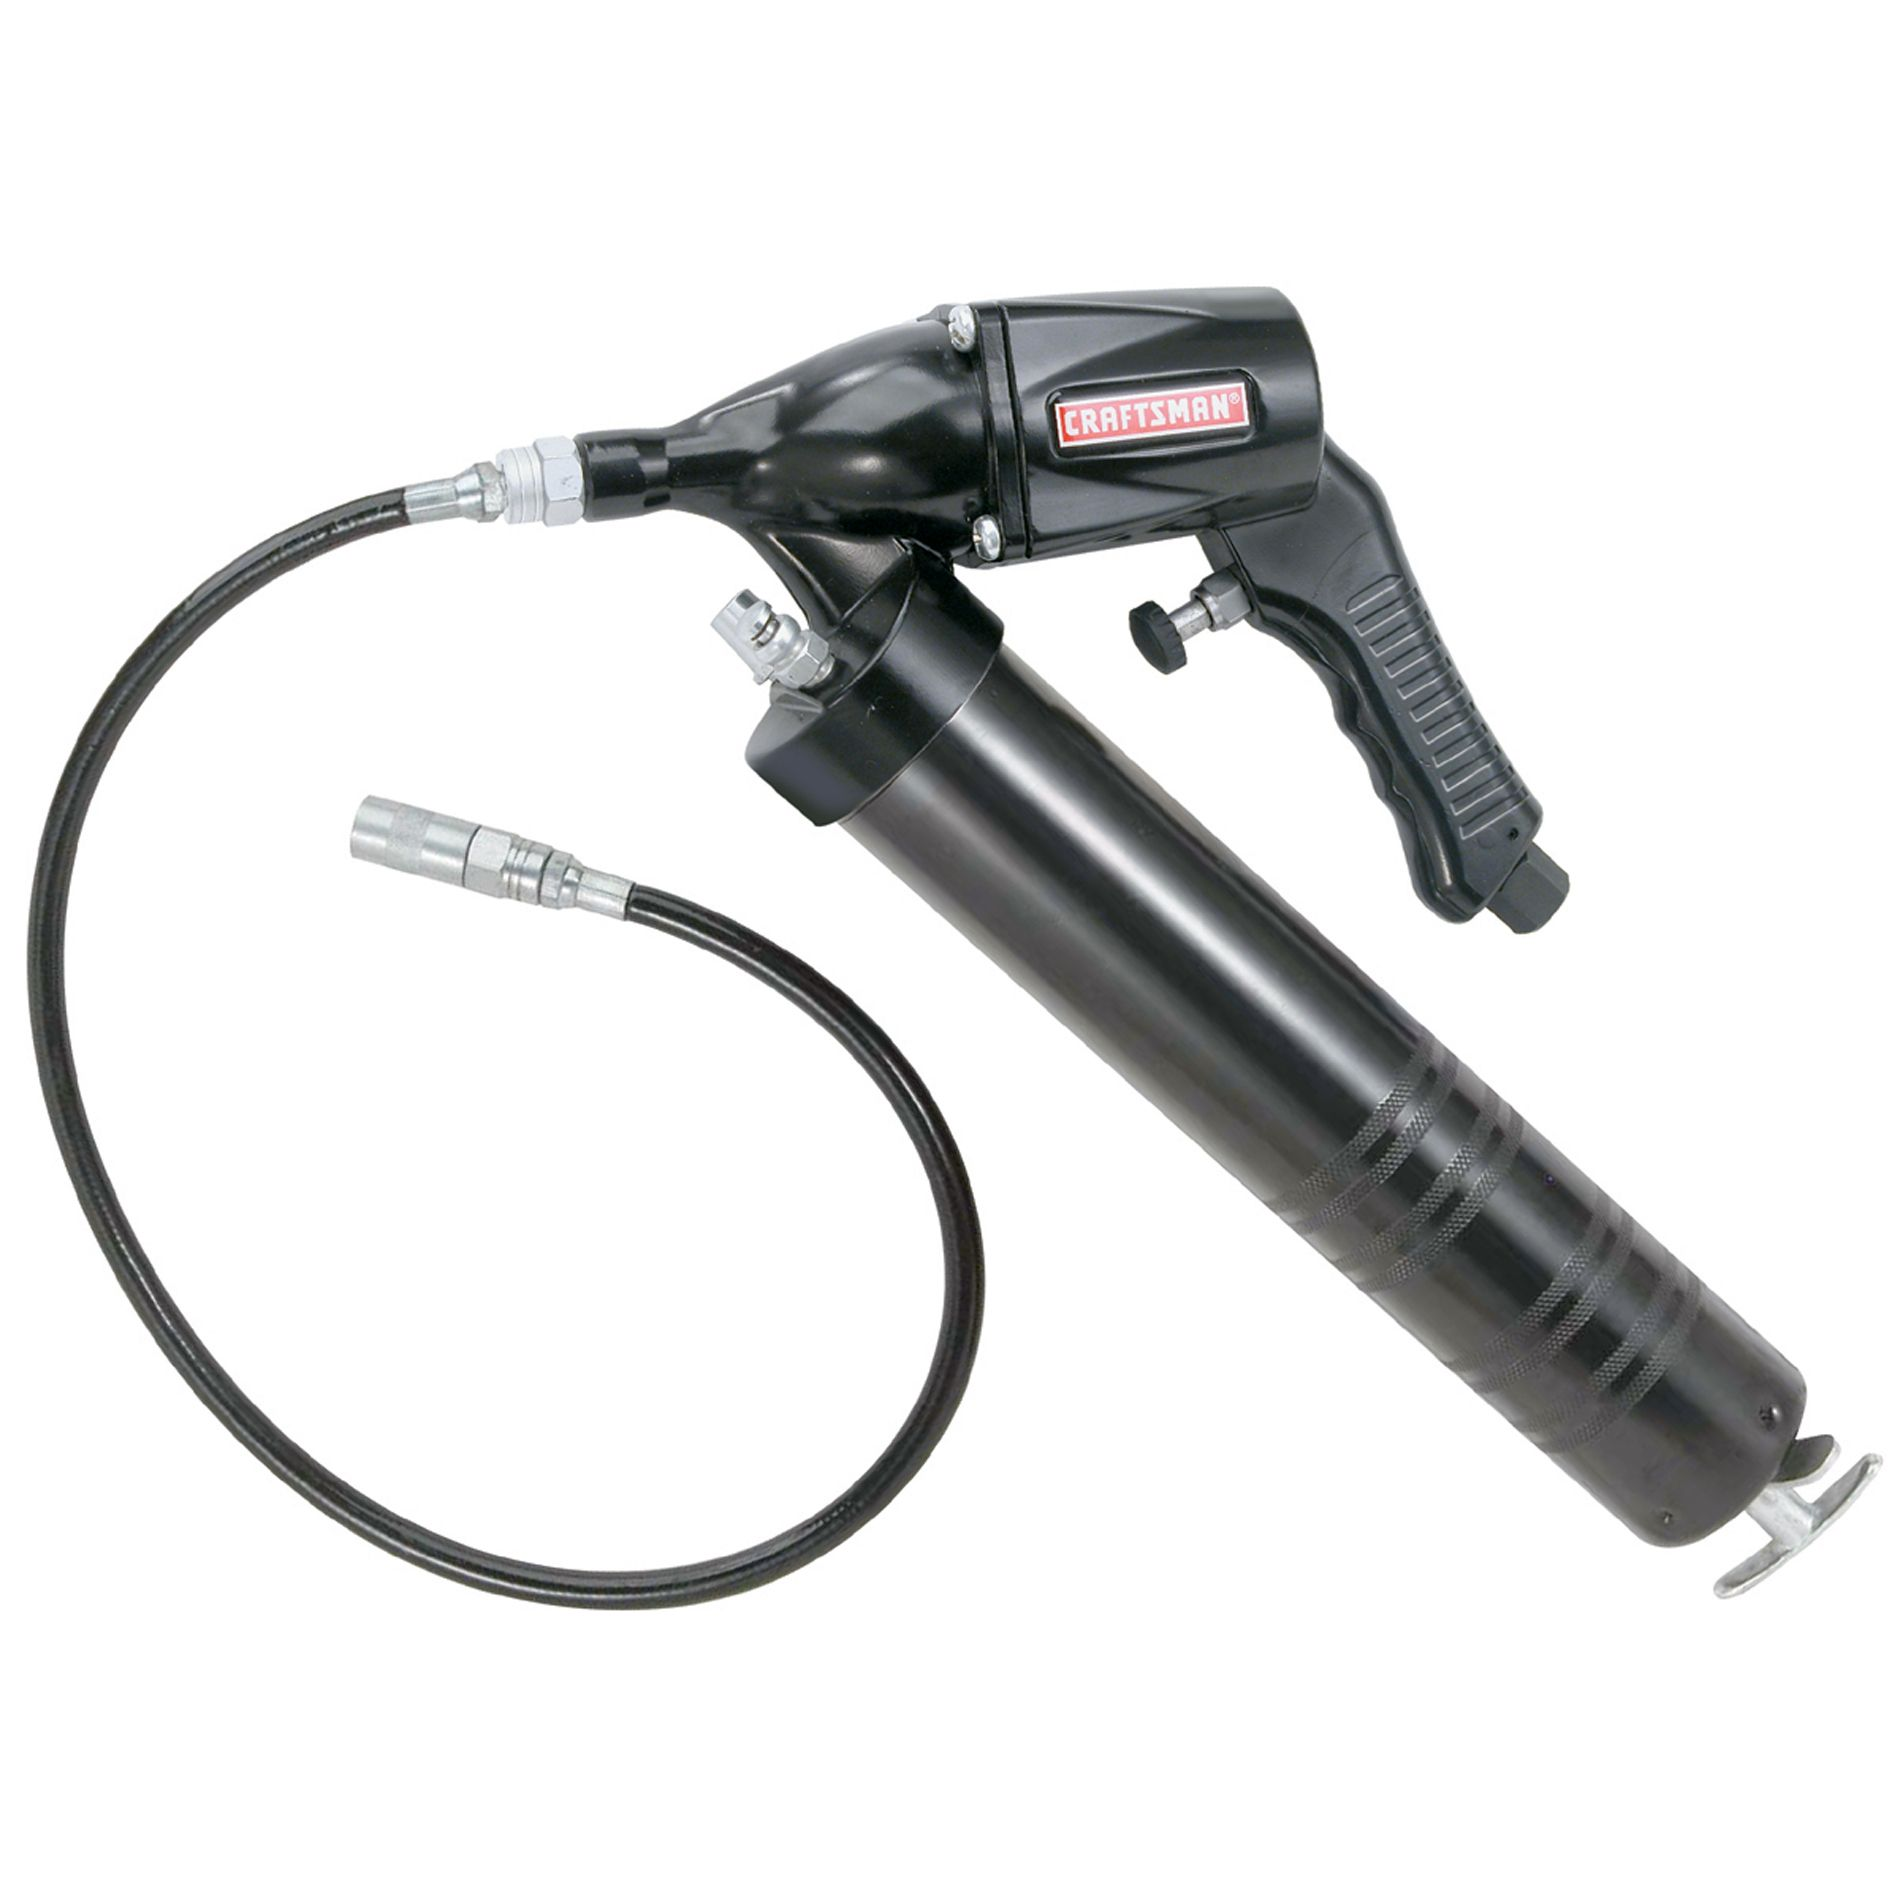 Electric Grease Gun Craftsman Single Shot Grease Gun